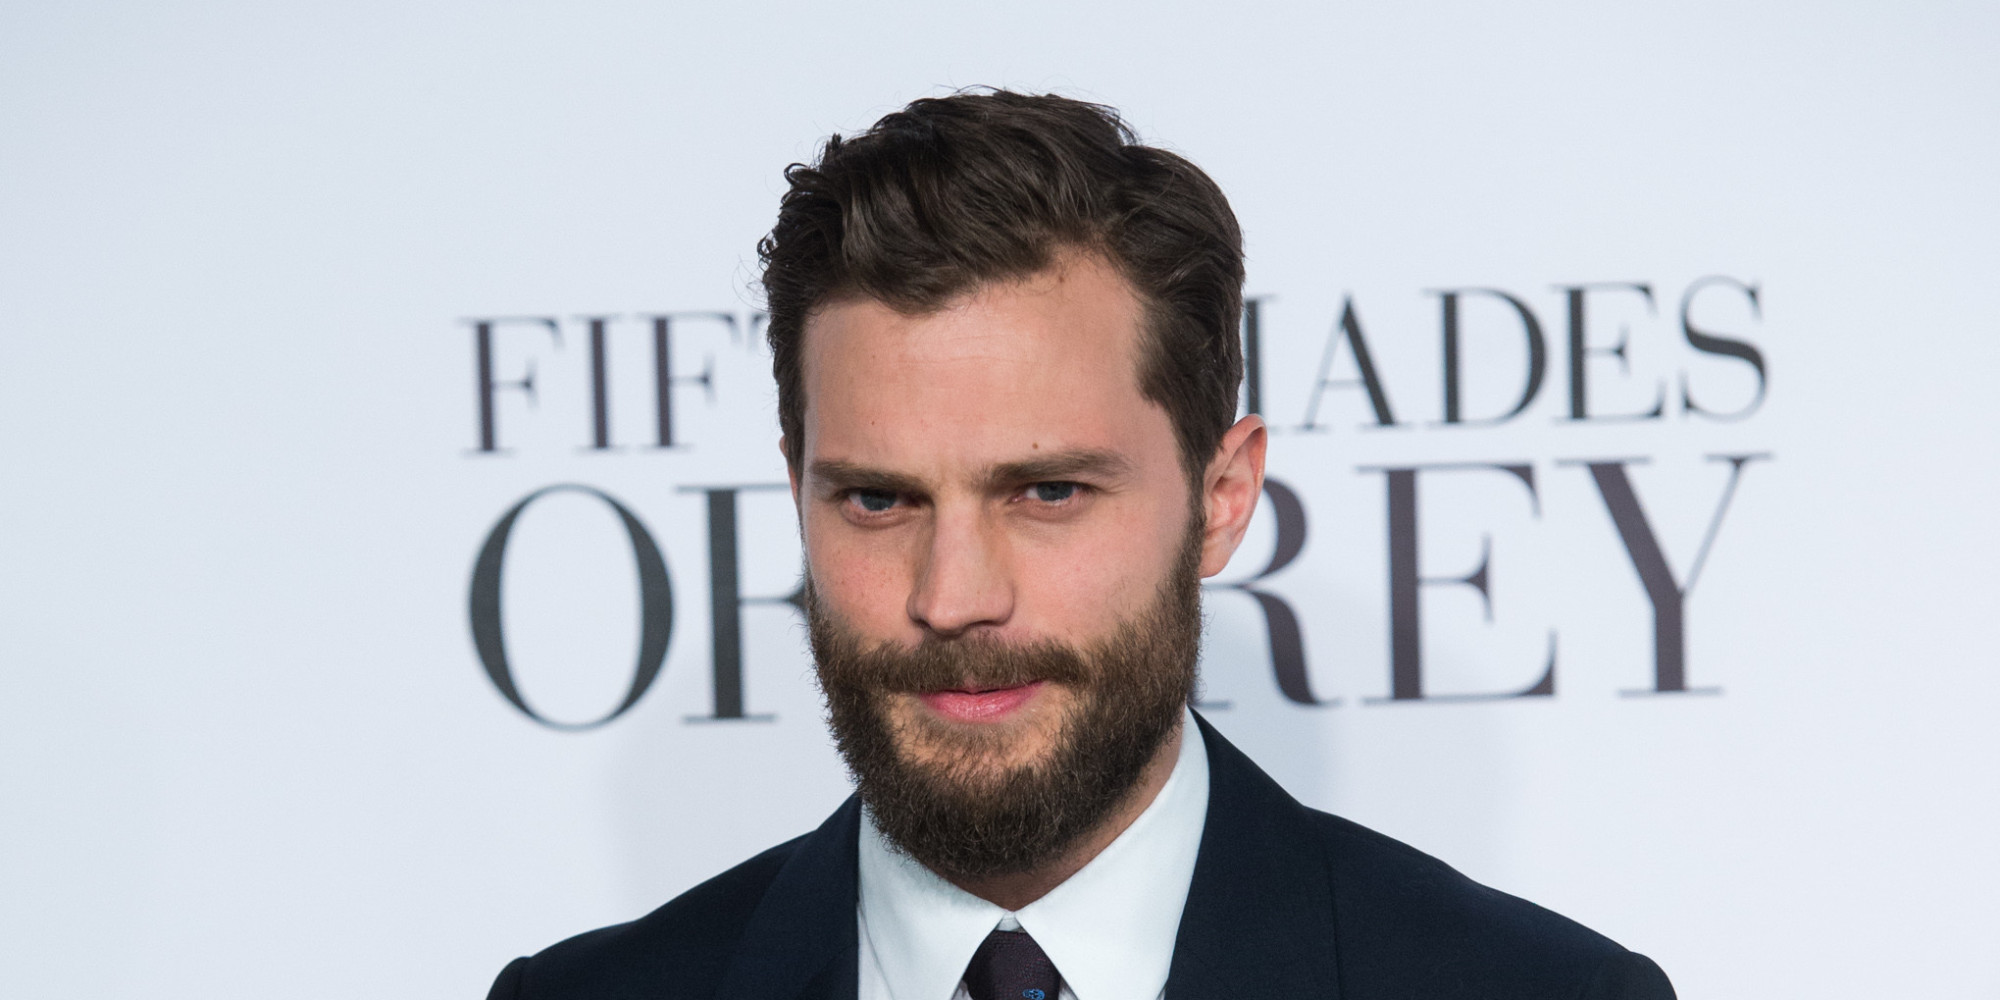 sex therapist on what women can actually learn from 50 shades of sex therapist on what women can actually learn from 50 shades of grey the huffington post